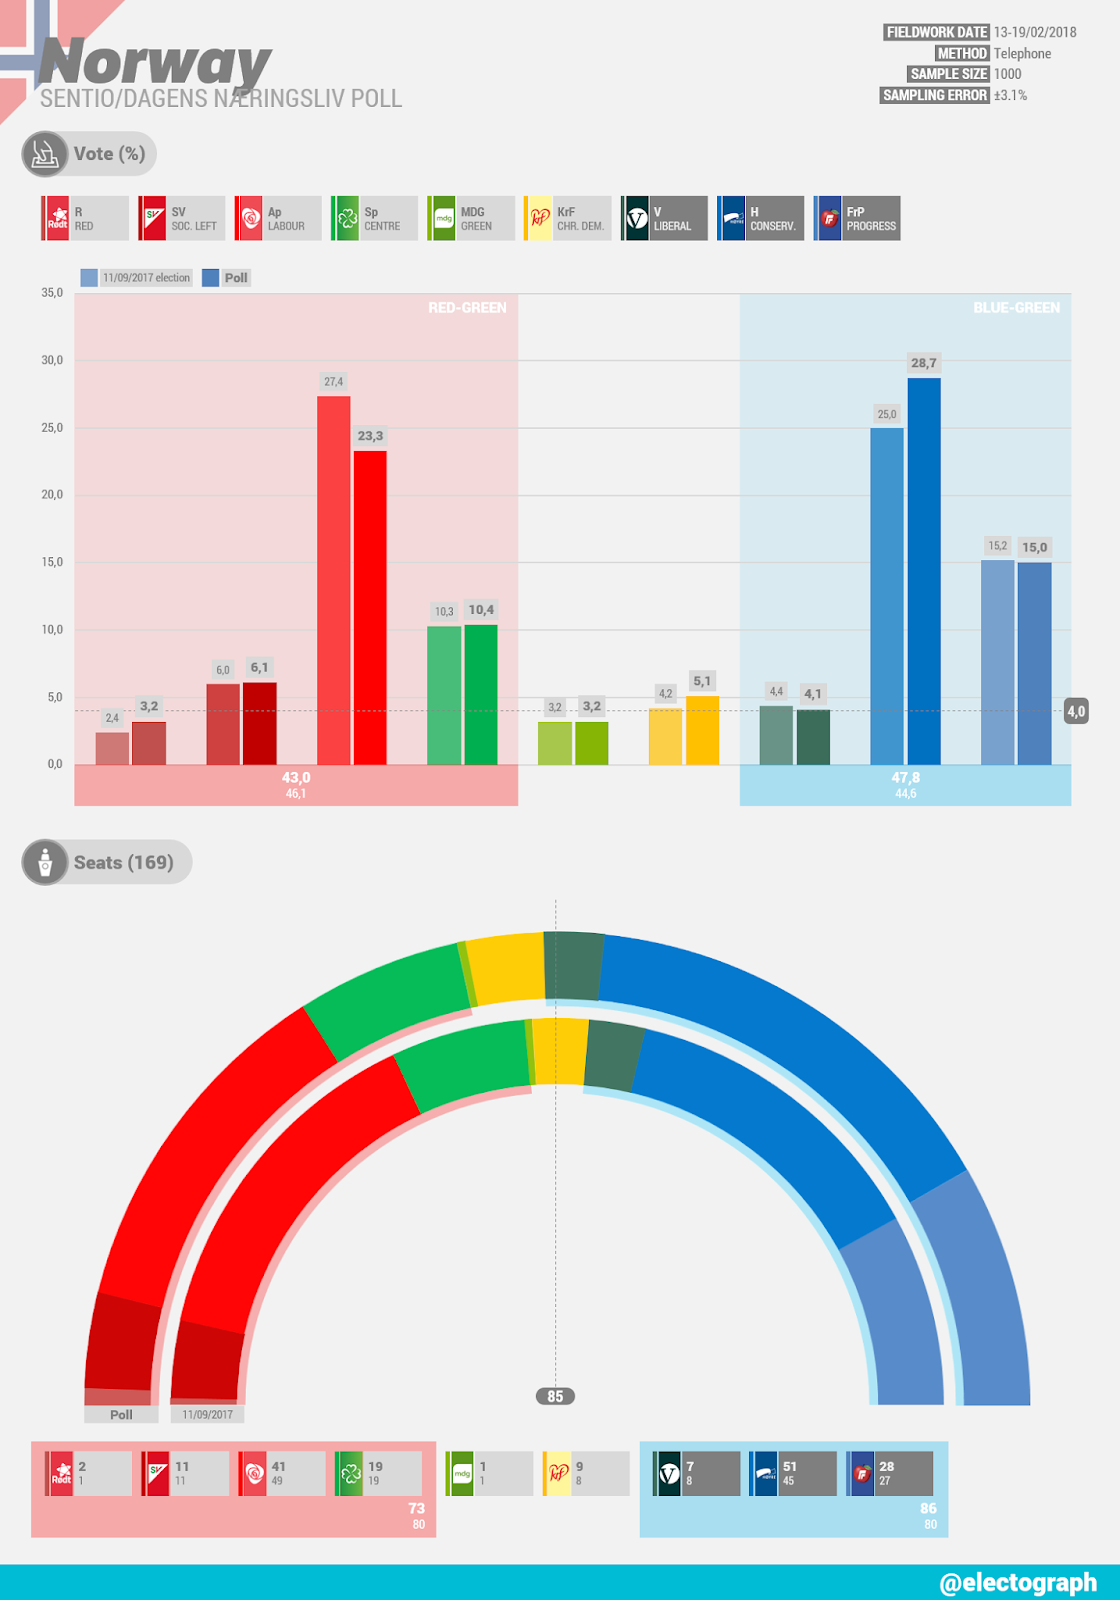 NORWAY Sentio poll for Dagens Næringsliv, February 2018